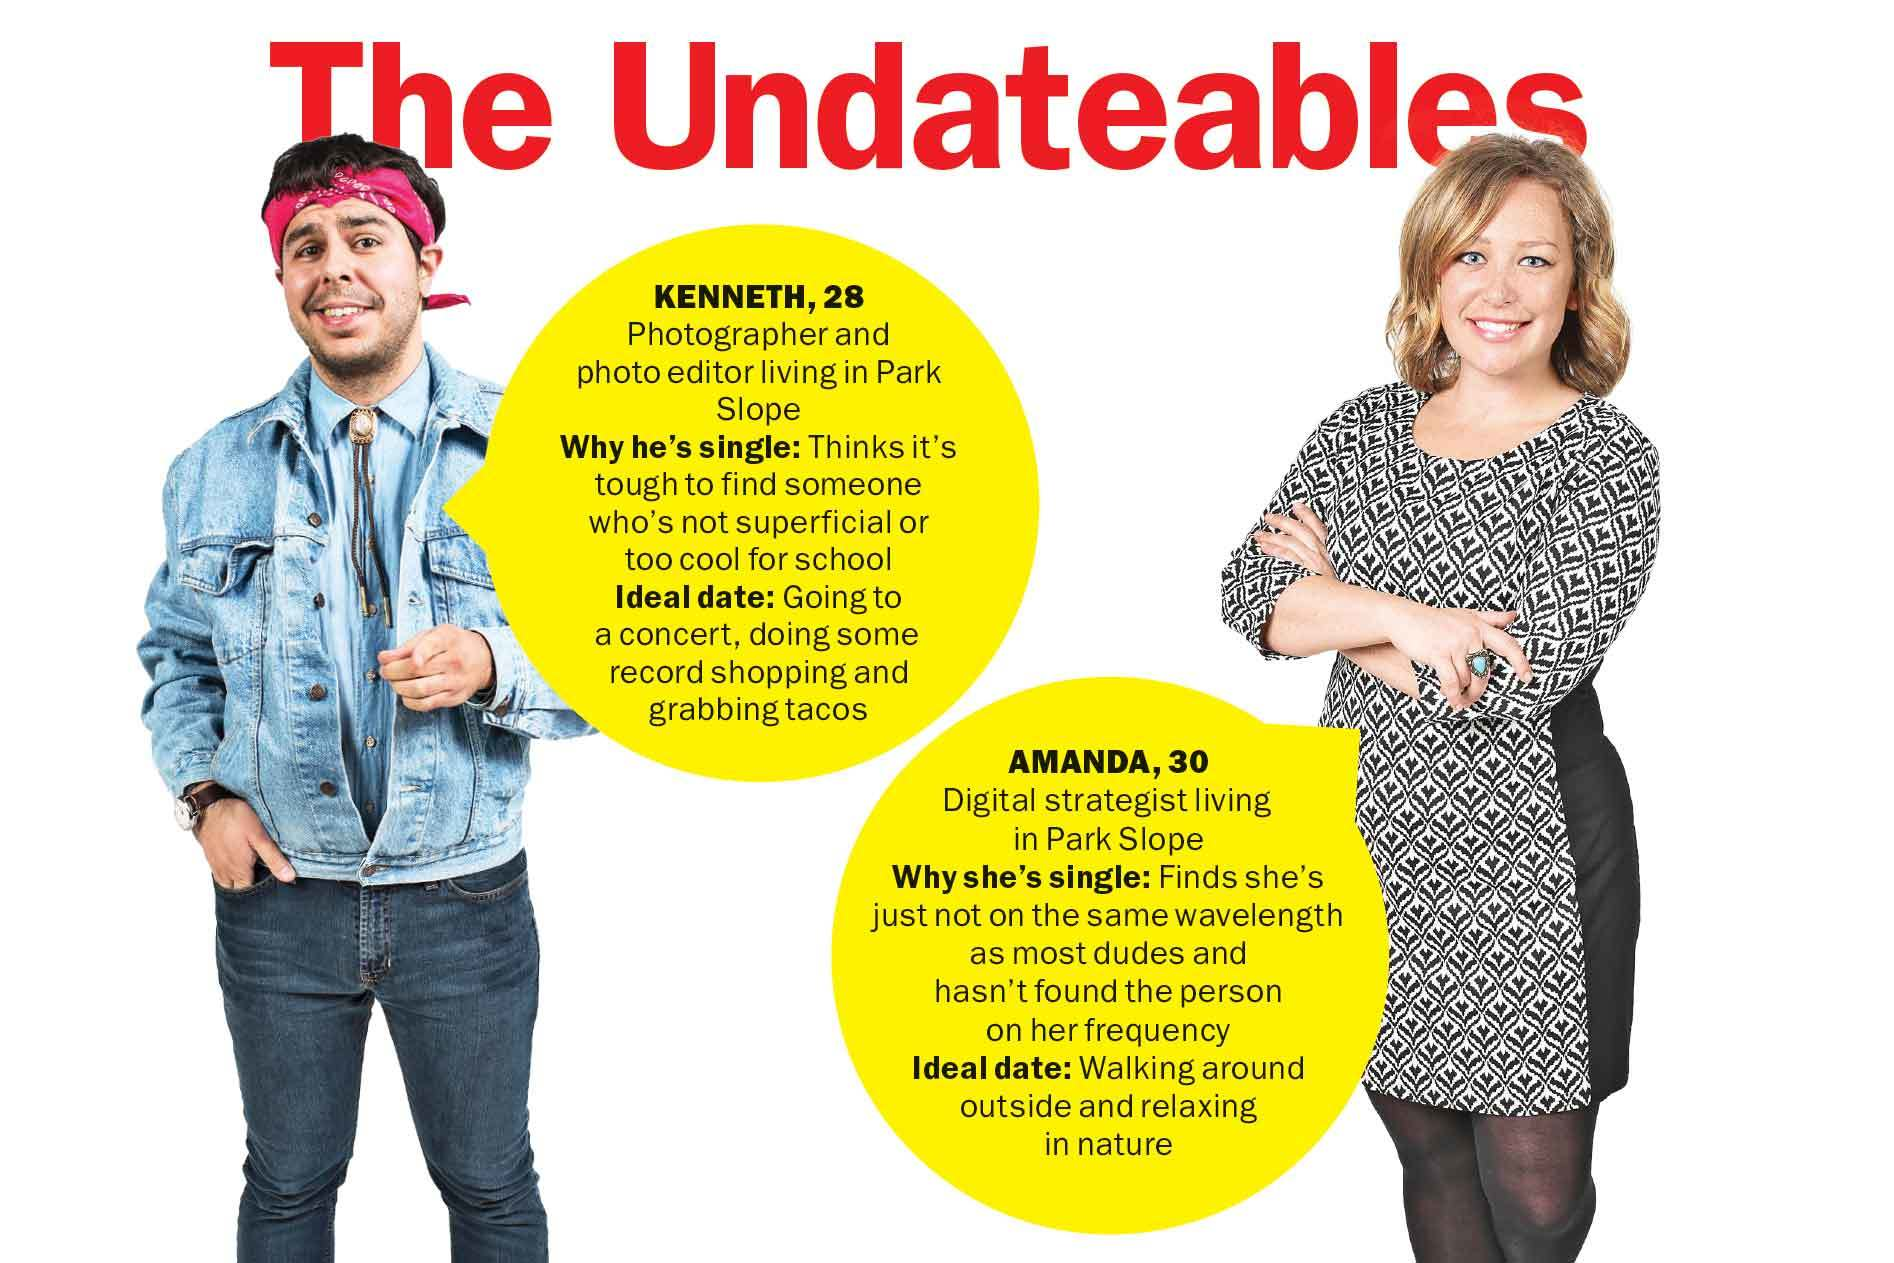 Meet the Undateables: Amanda and Kenneth